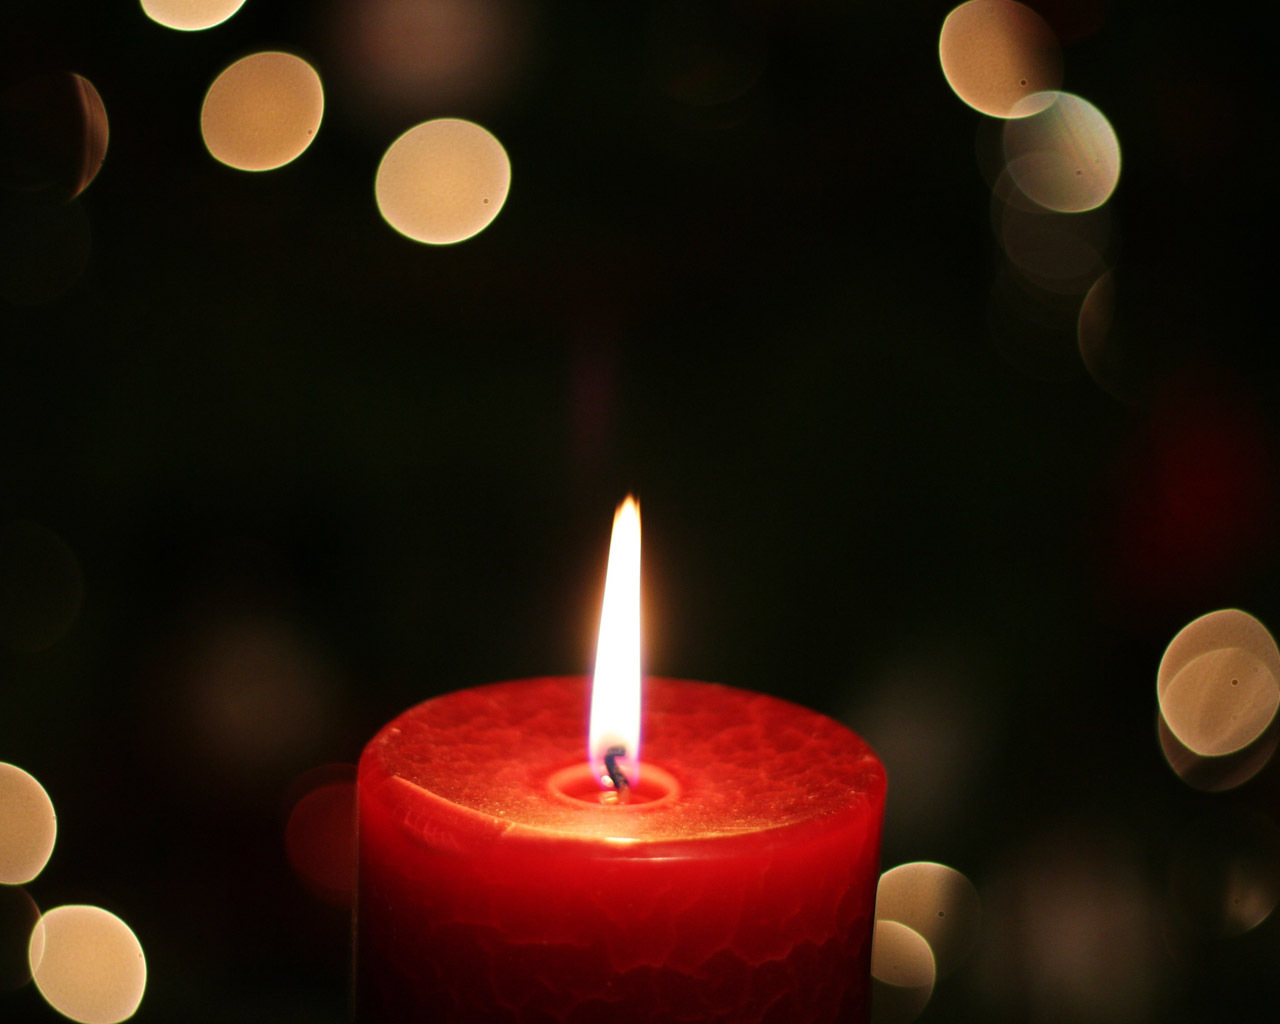 Candle-wallpaper-candles-4091313-1280-1024